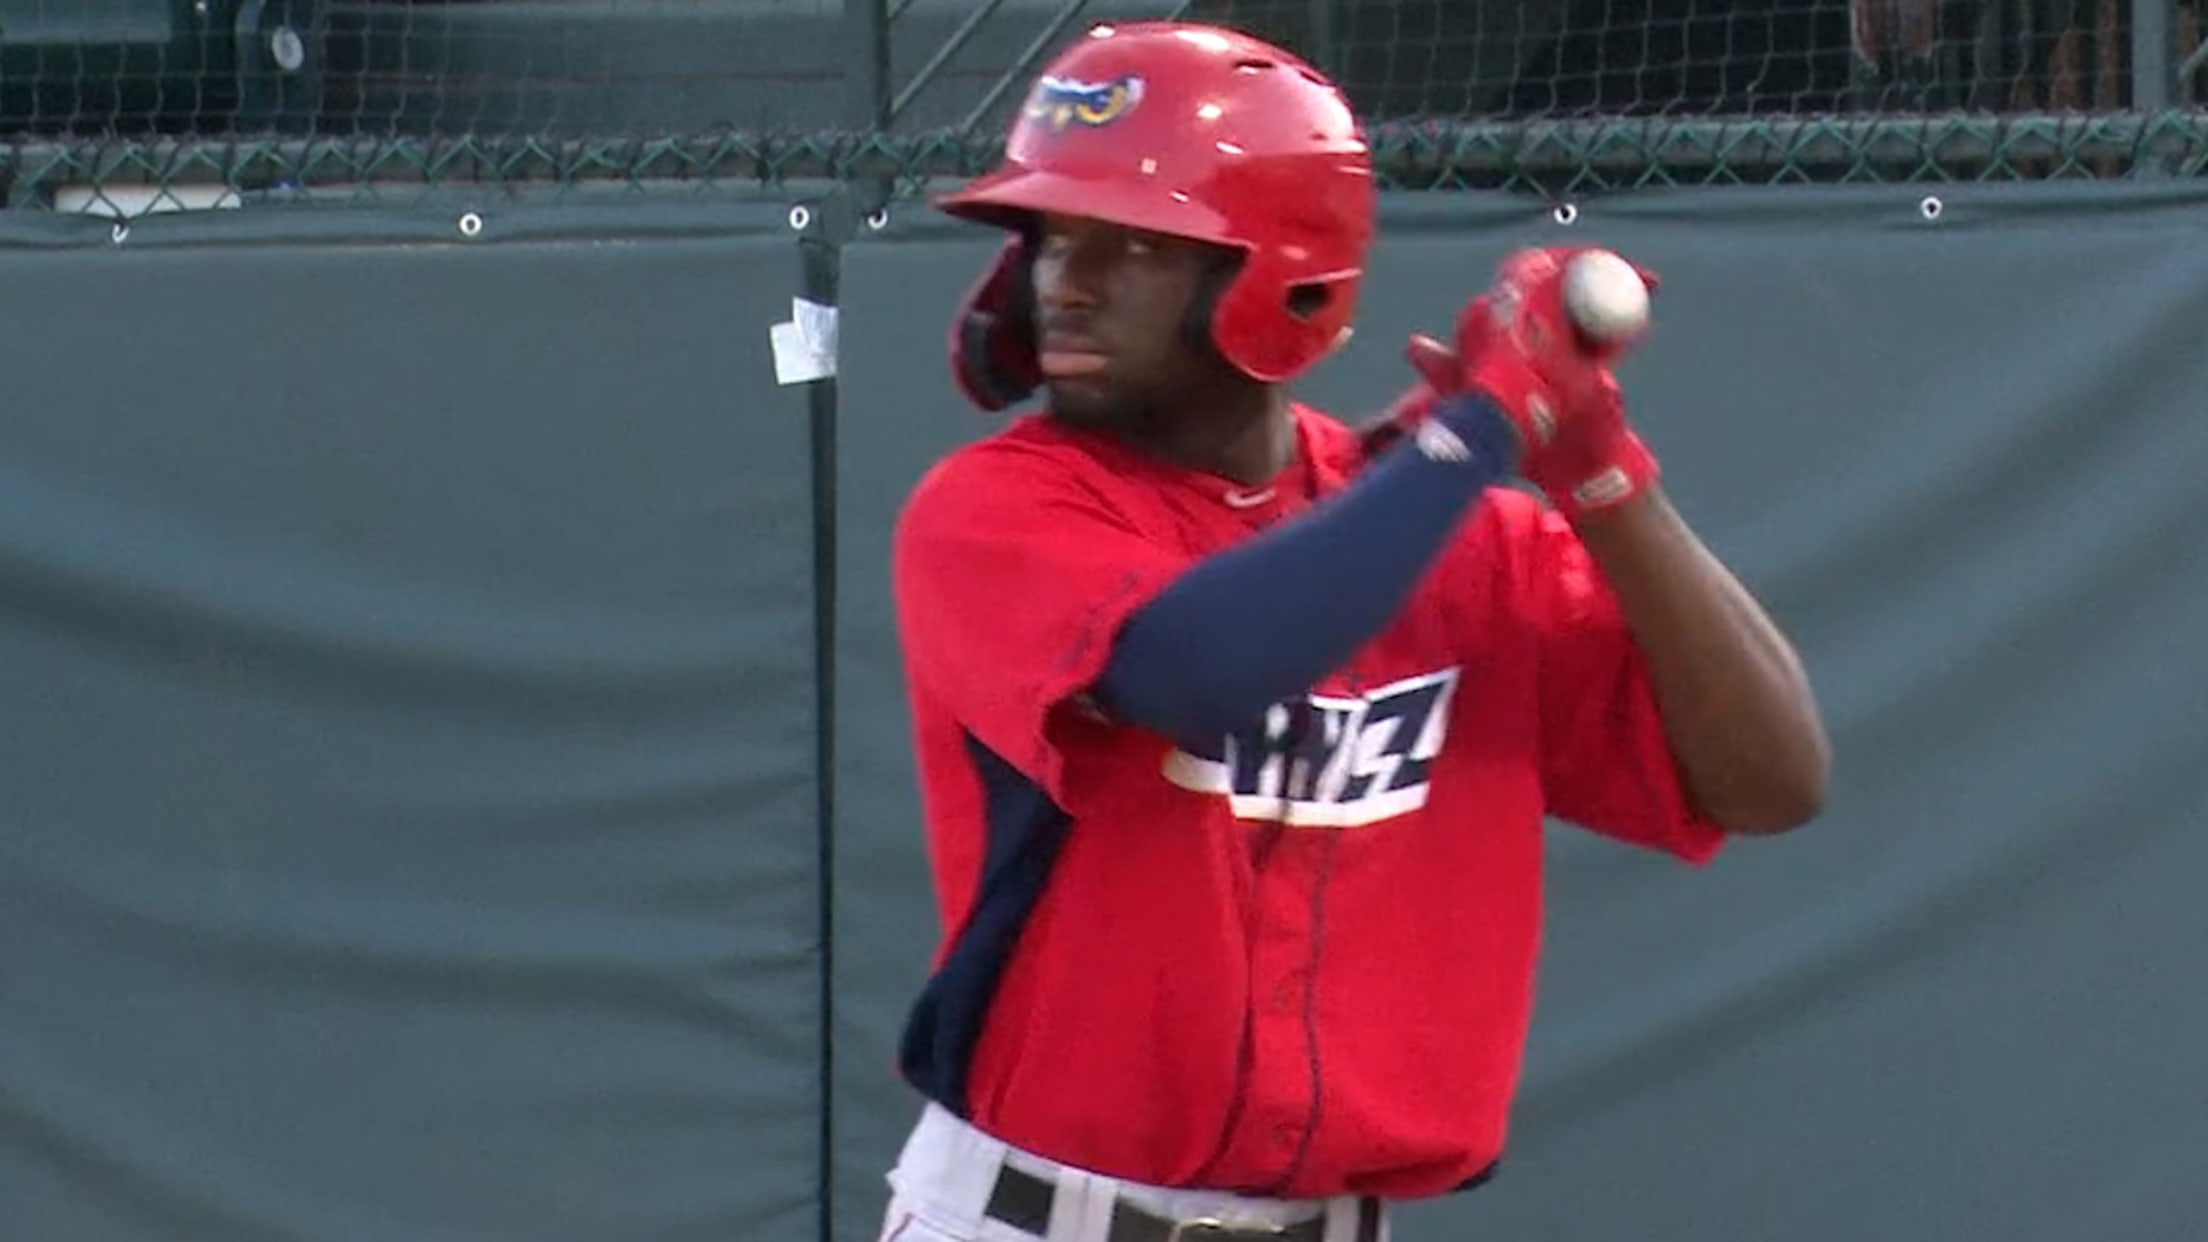 Top Prospects: D'Shawn Knowles, LAA